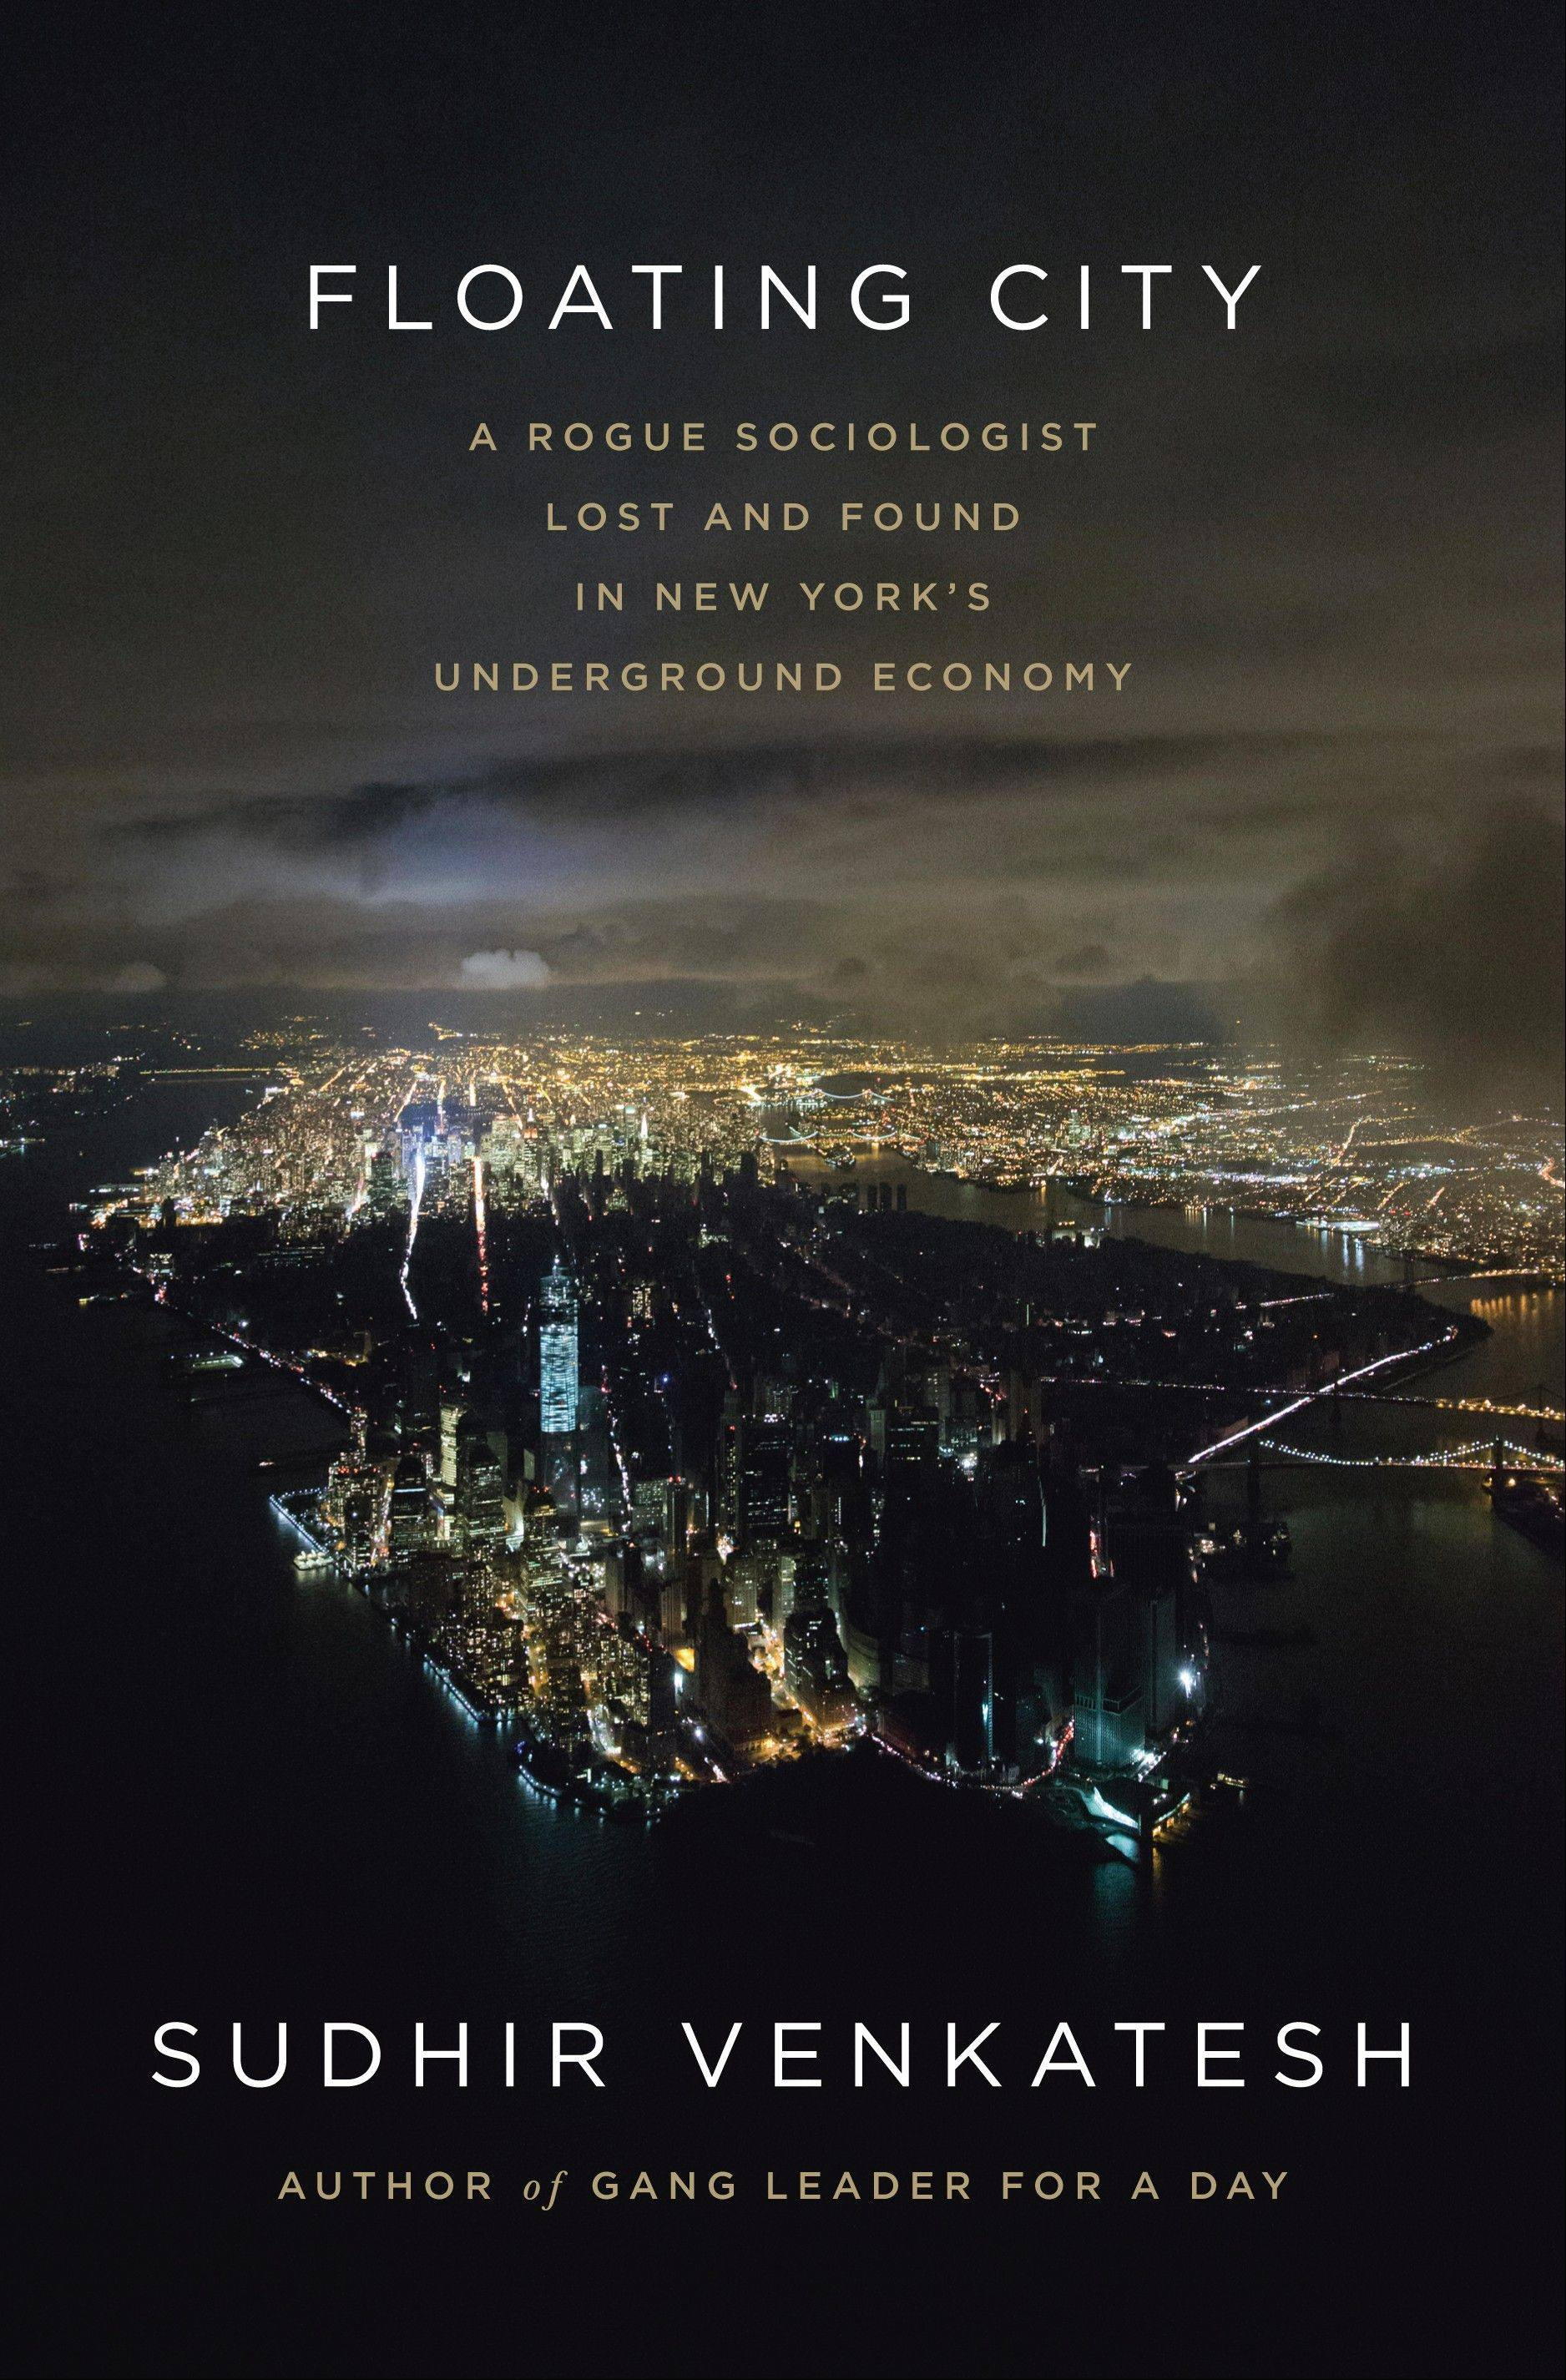 """Floating City: A Rogue Sociologist Lost and Found in New York's Underground Economy"" by Sudhir Venkatesh"